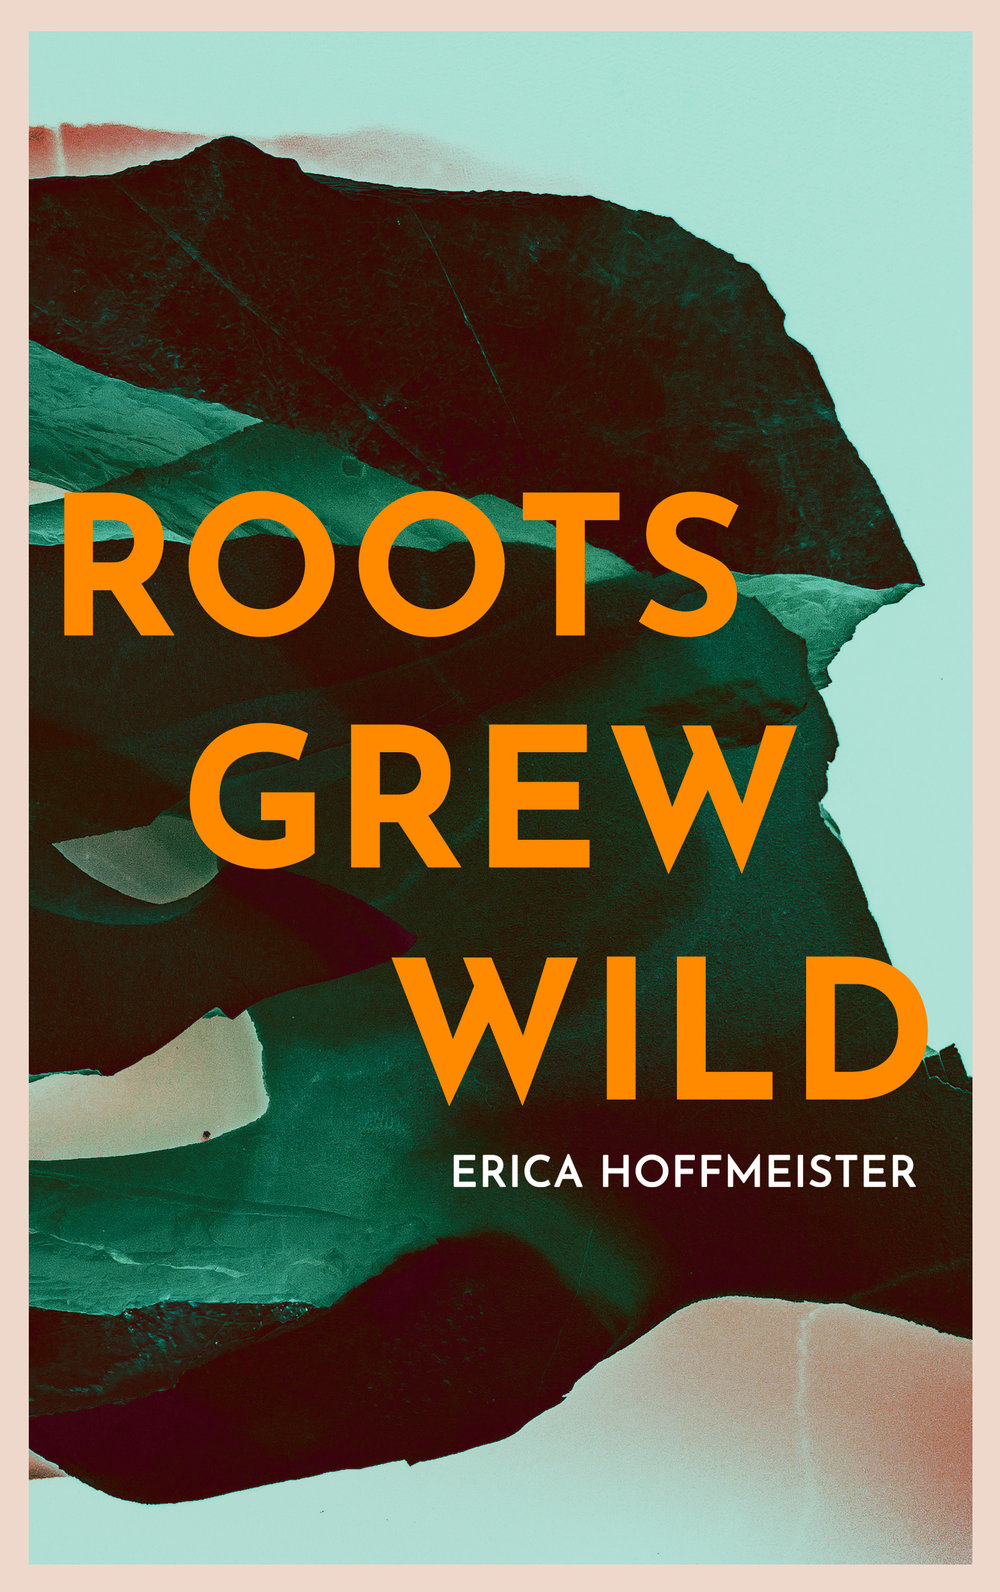 ROOTS GREW WILDBY ERICA HOFFMEISTER - RELEASE DATE: FEB 4TH 2019:GENRE: PoetryIn Roots Grew Wild Erica Hoffmeister tells the story of a Midwestern family through the perspective of the eldest daughter. Driving the telling in prose poetry is a crisp and distinct voice that lays bare relationships between mother and daughter, father and daughter, as well as the relationship between sisters.KITW POETRY PRIZE WINNER 2018